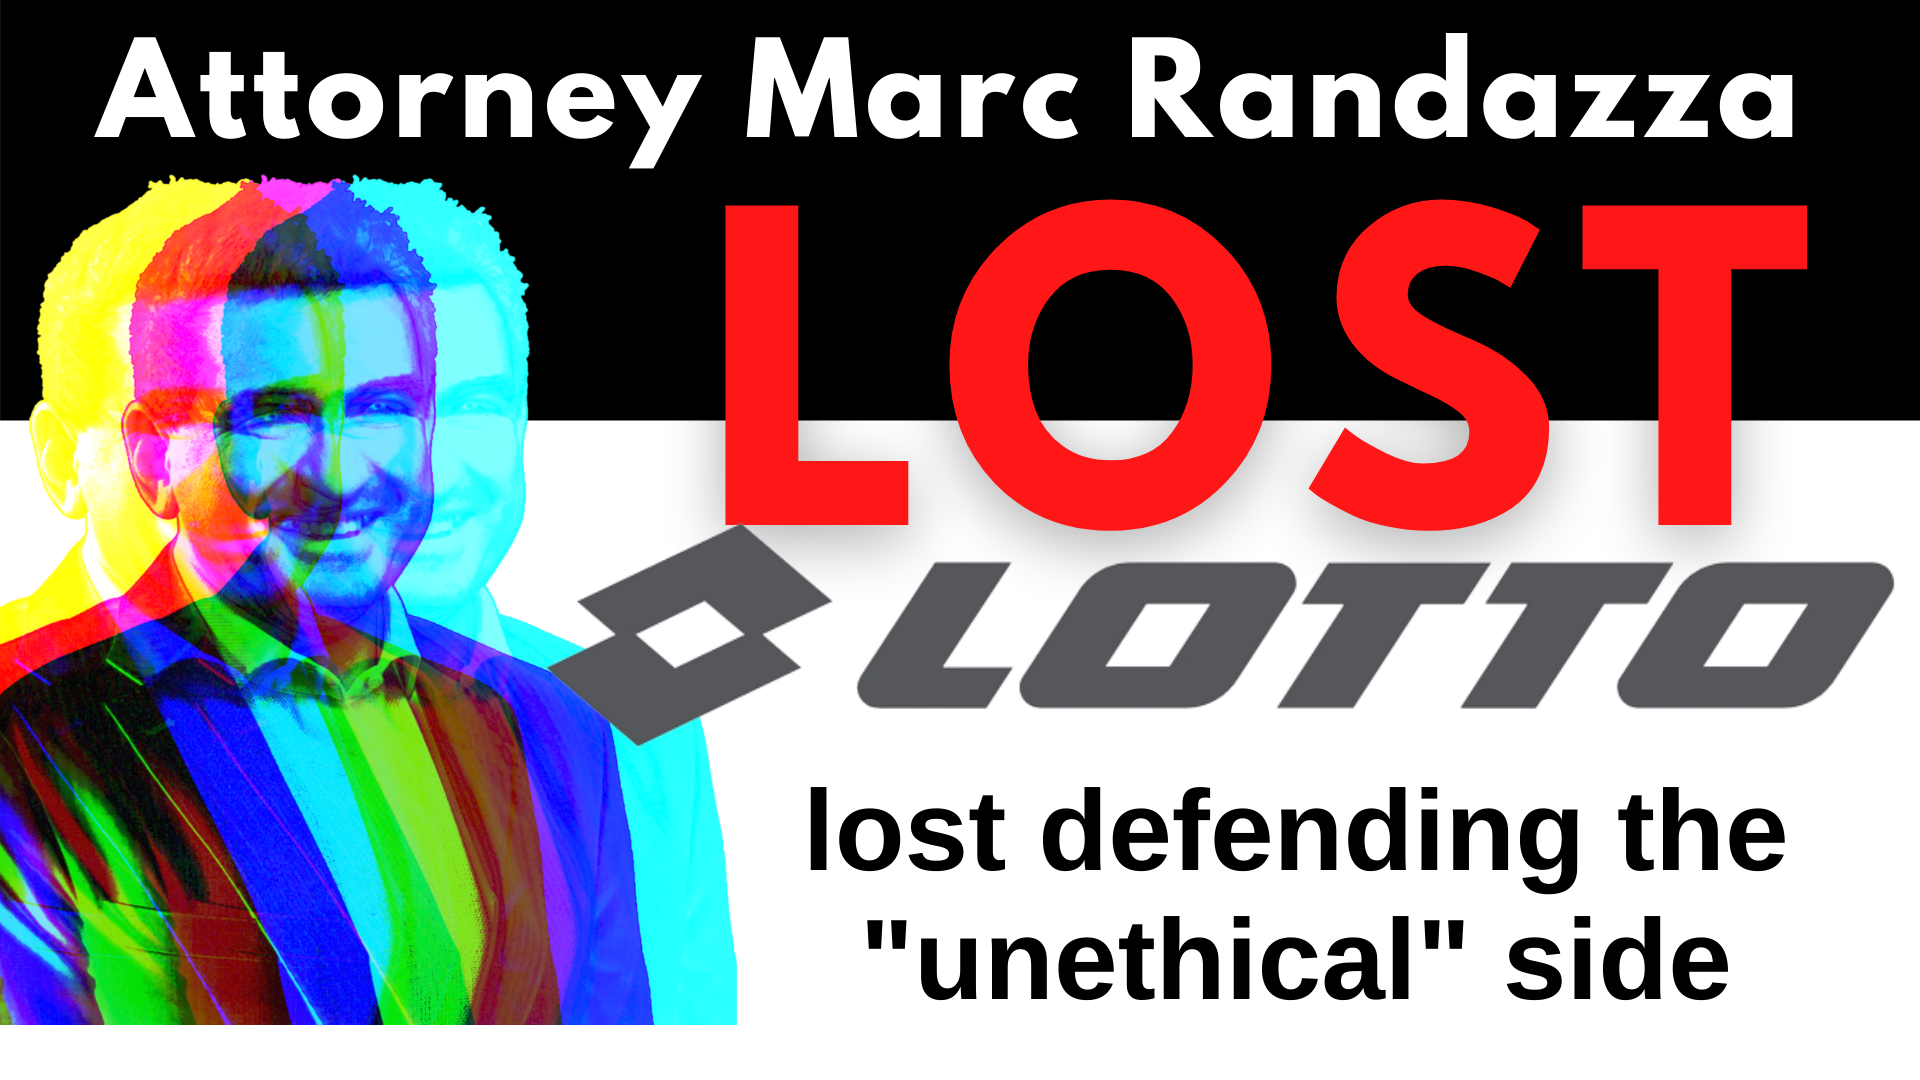 MARC RANDAZZA DEFENDS UNETHICAL CLIENT AND LOSES IN COURT, AGAIN